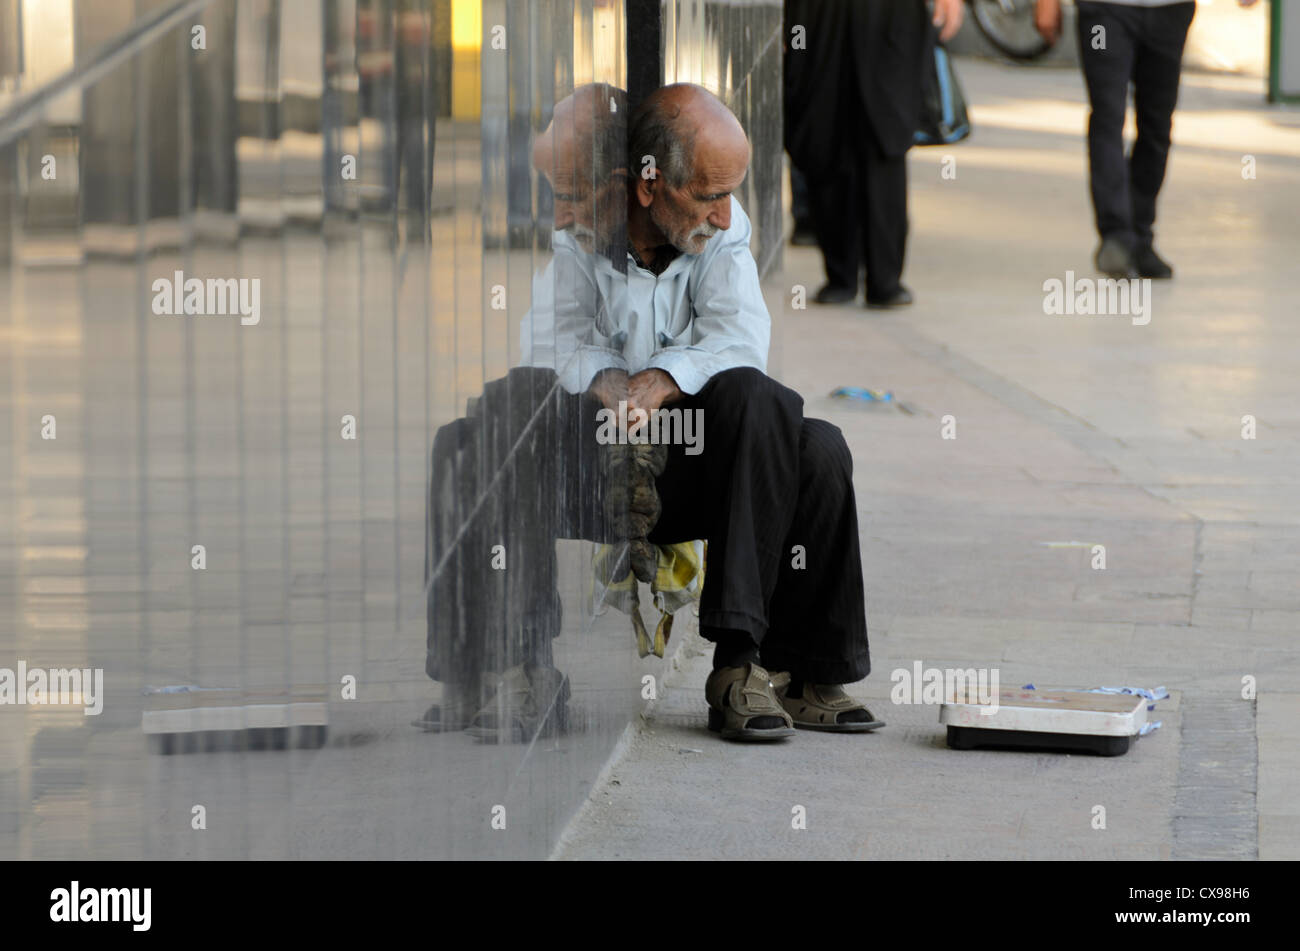 Old man trying to make money with his weight scale in uptown Tehran. - Stock Image